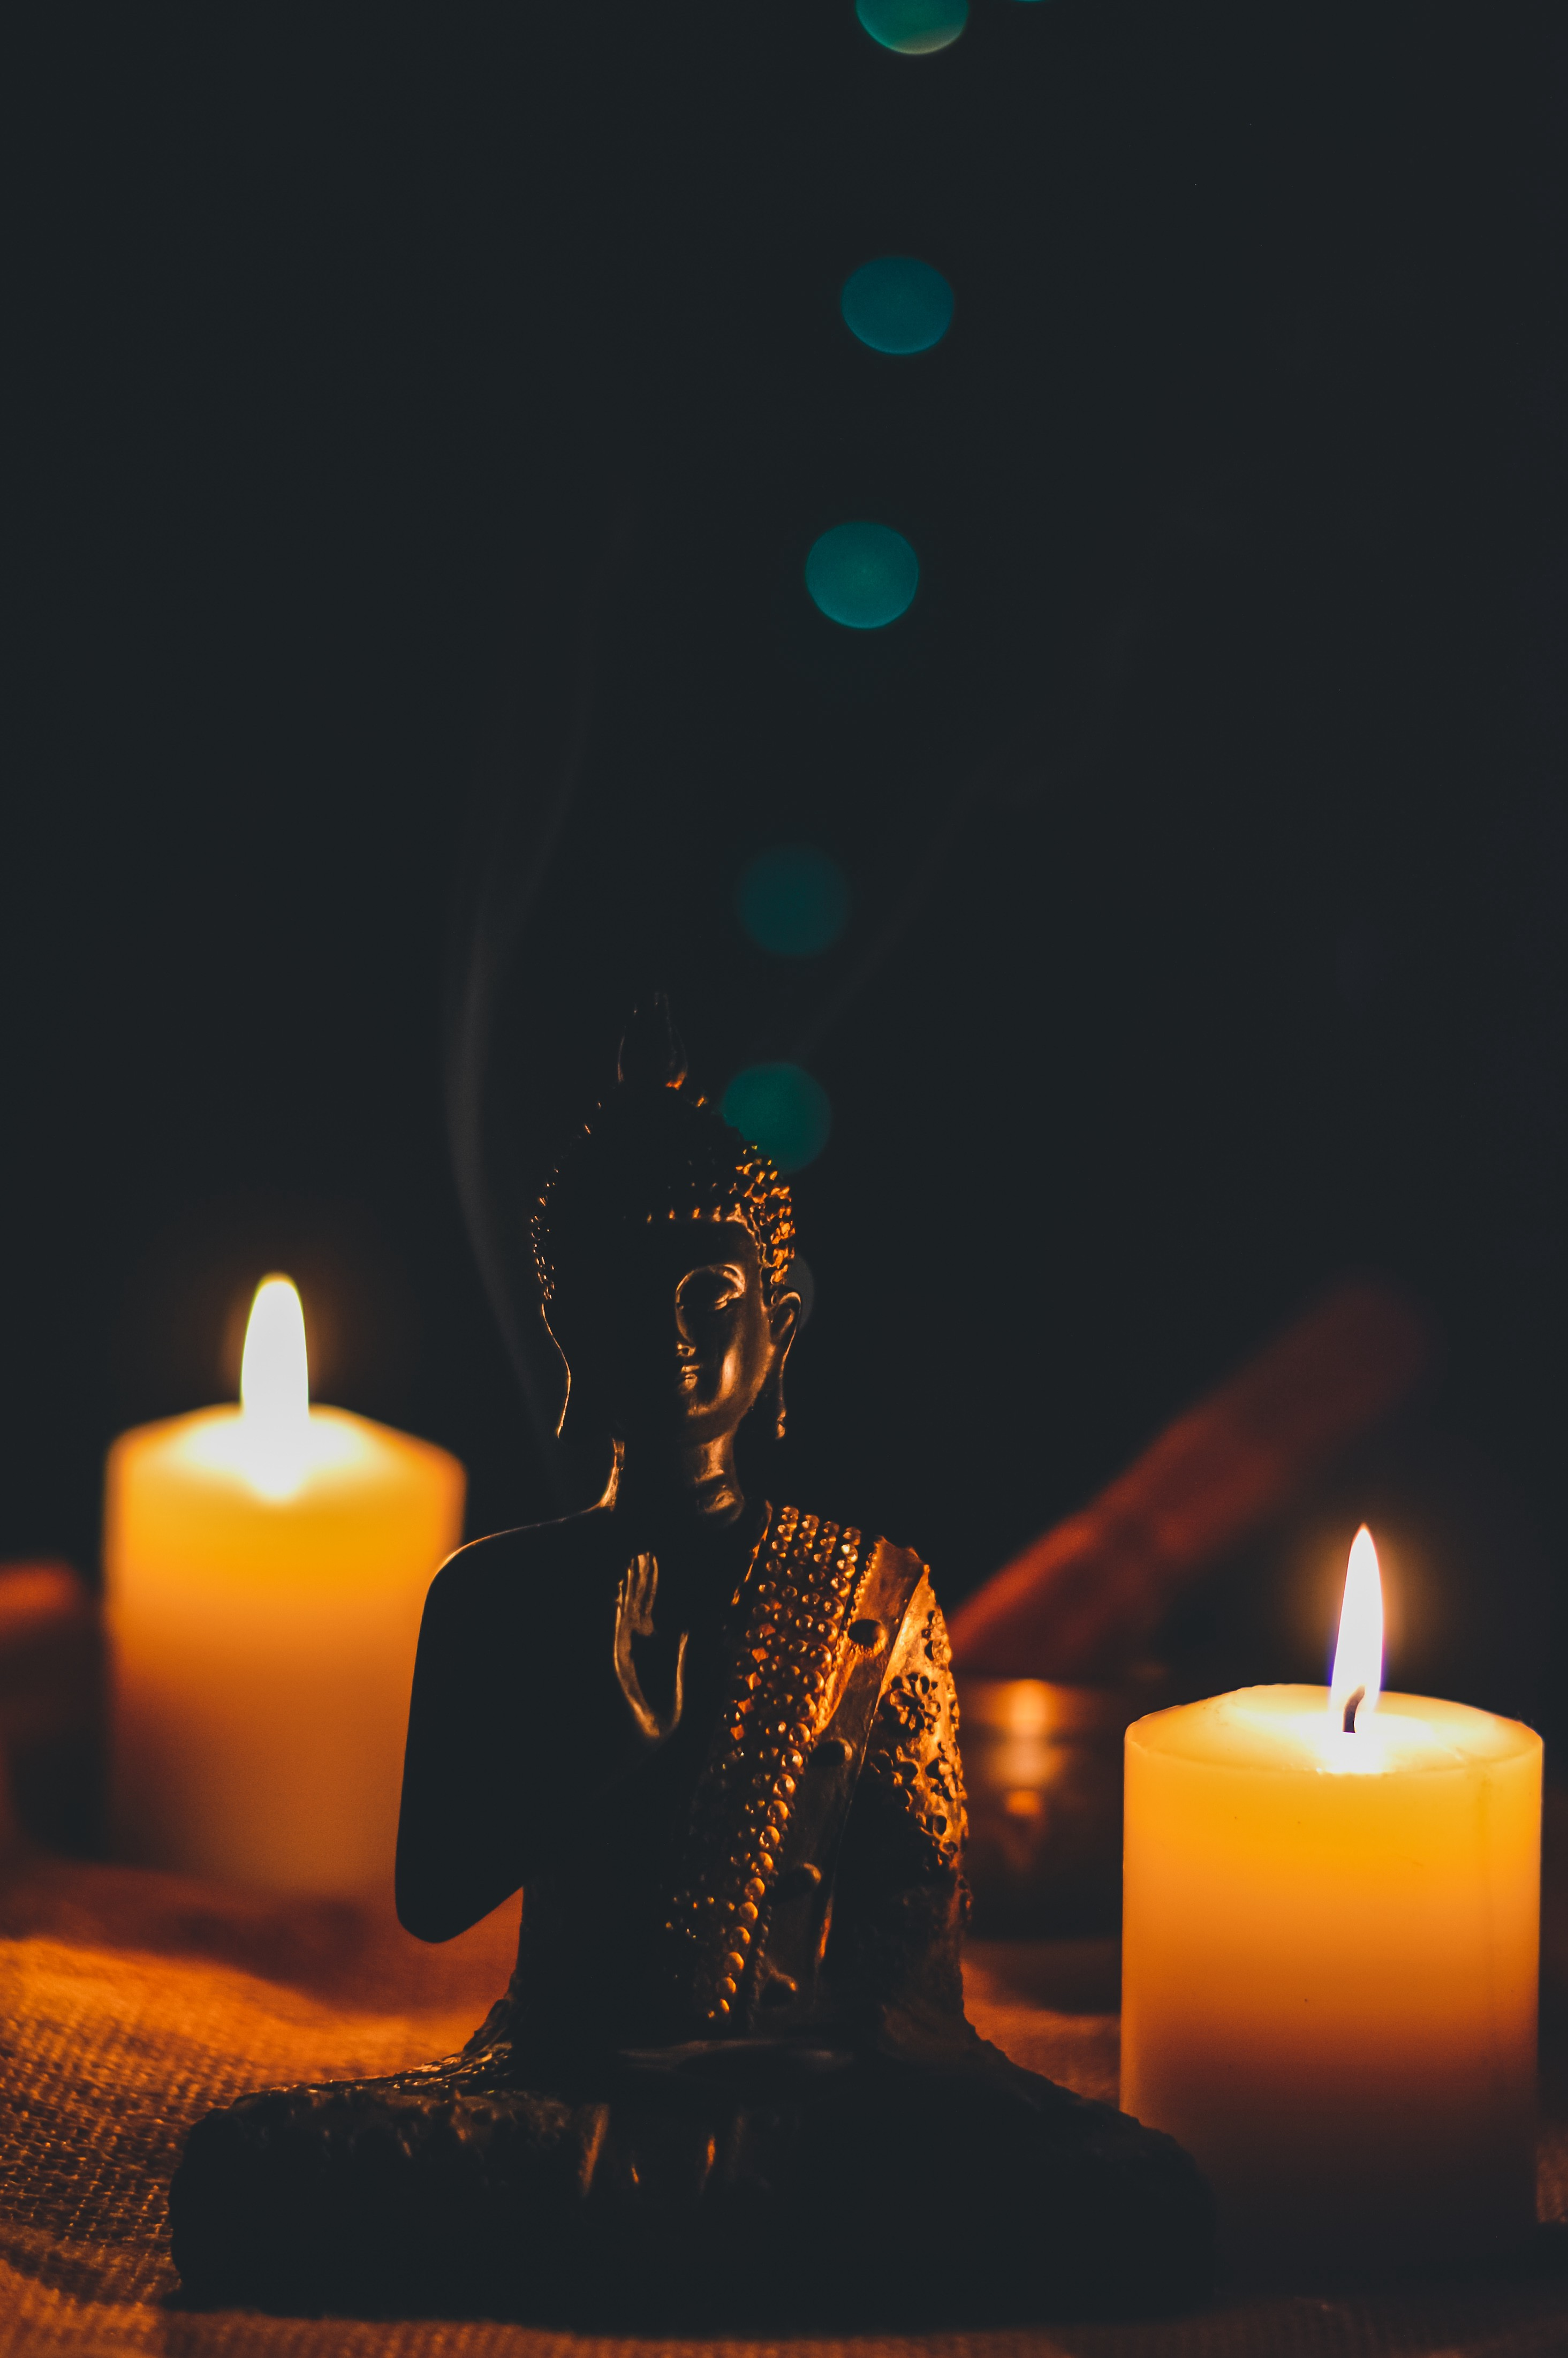 Seated buddha figure in between two lighted candles—One thing keeping me sane during this pandemic